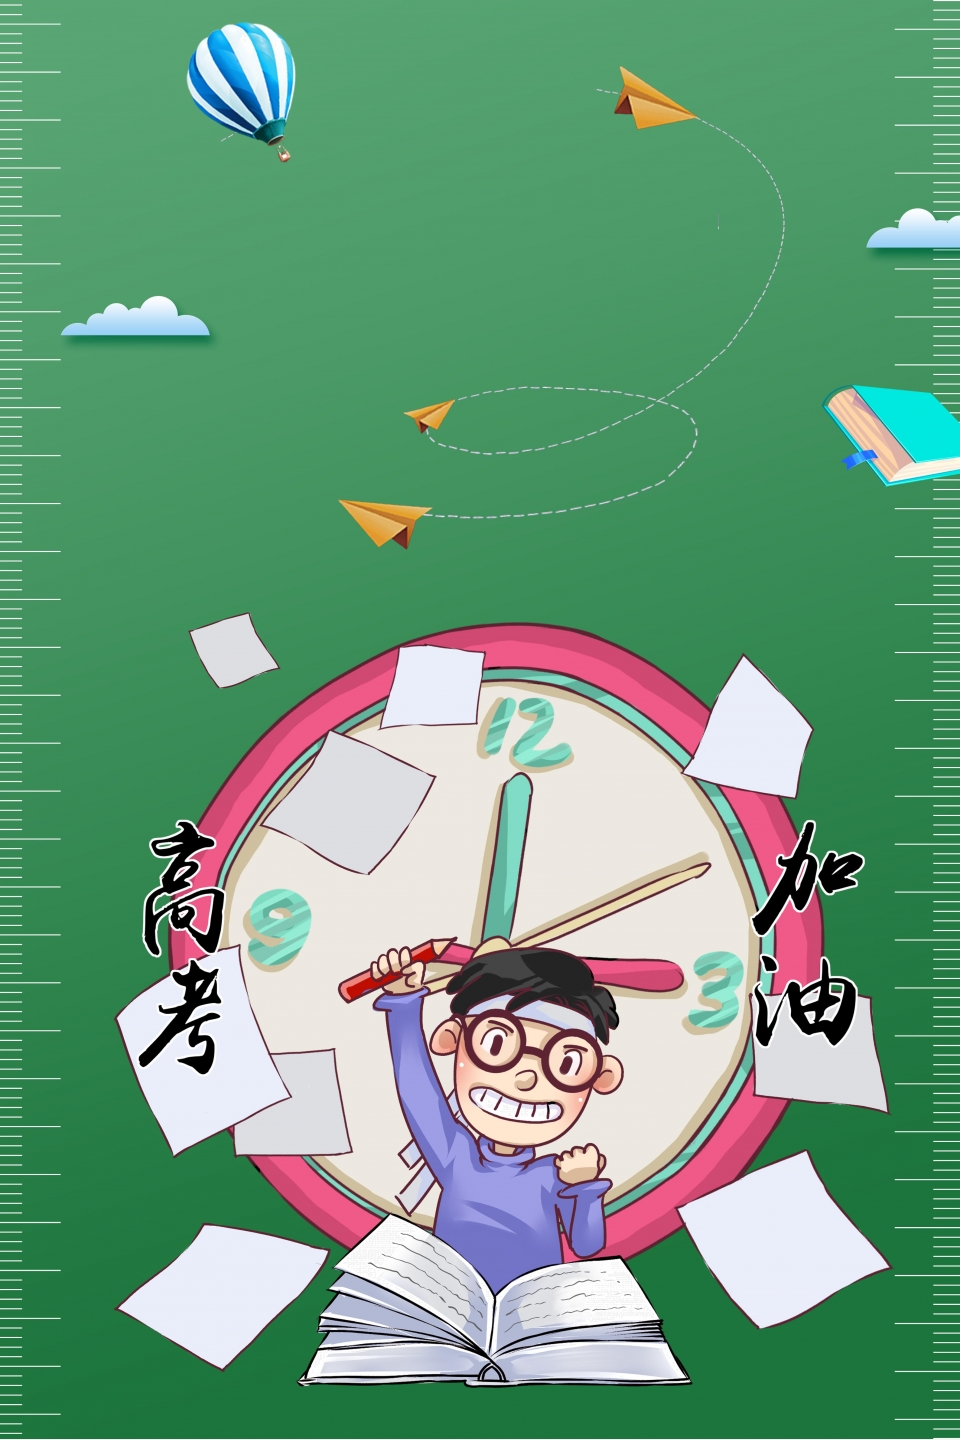 college entrance examination school education creative poster design background template